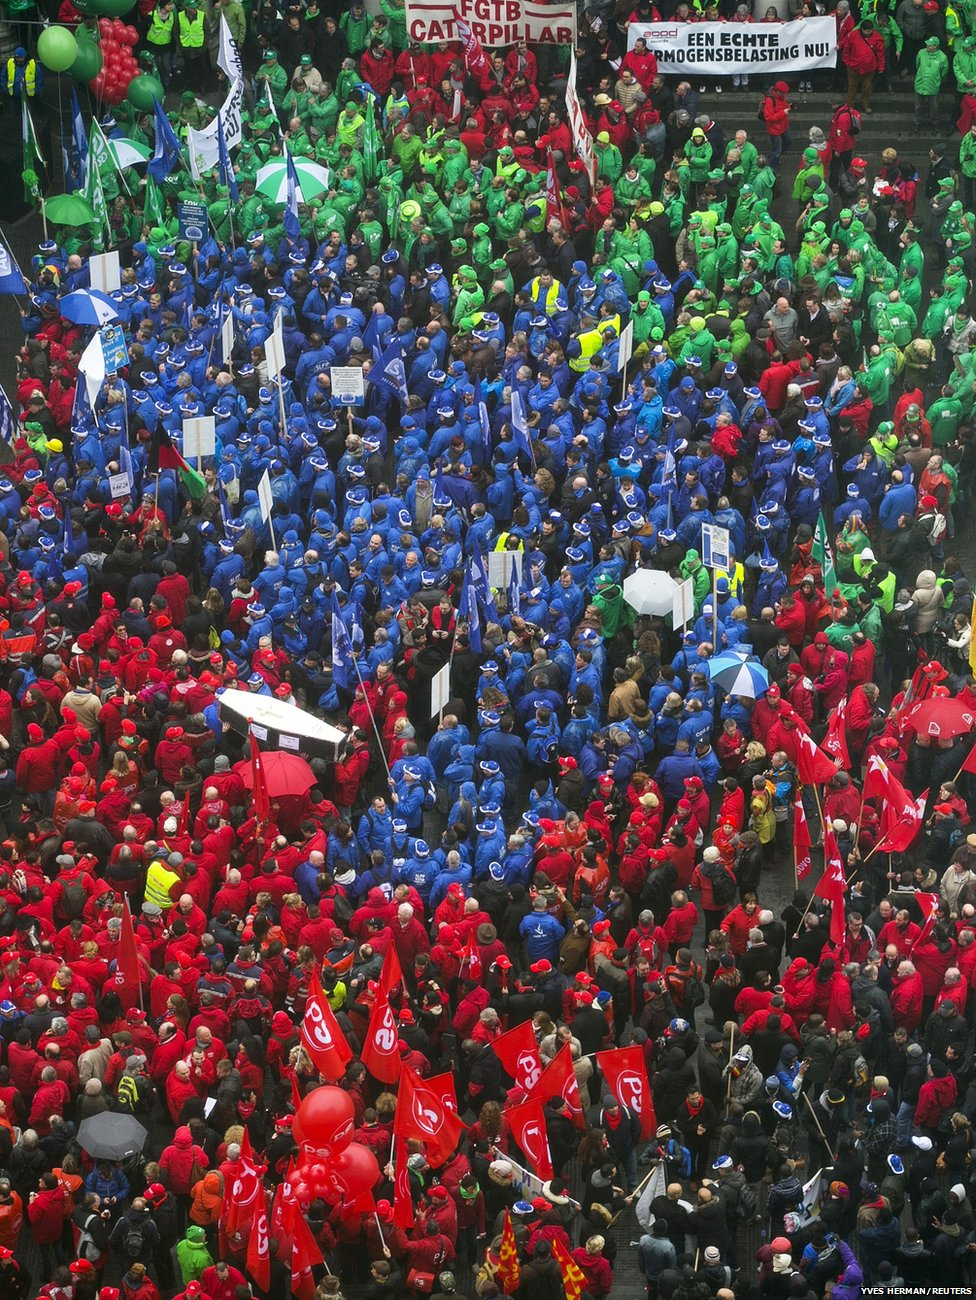 Protesters wearing red (Socialists), blue (Liberals) and green (Christian Democrats) vests gather in central Brussels during a trade union meeting